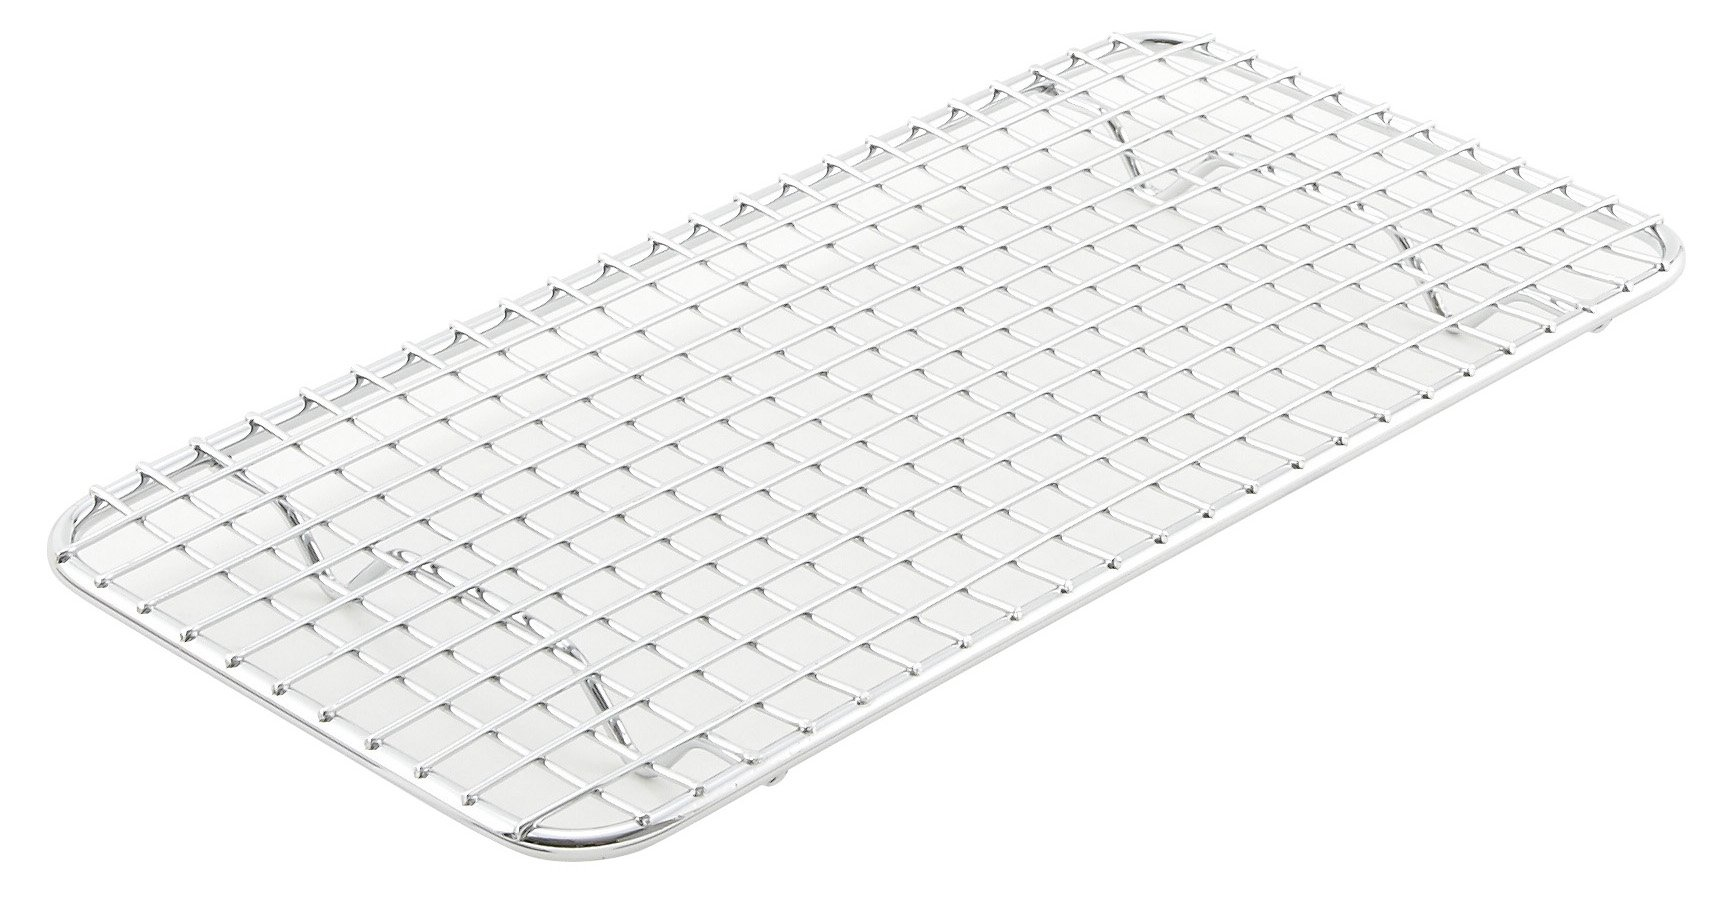 Pan Grate for Third-size Steam Pan, 5 x 10-1/2, Chrome Plated